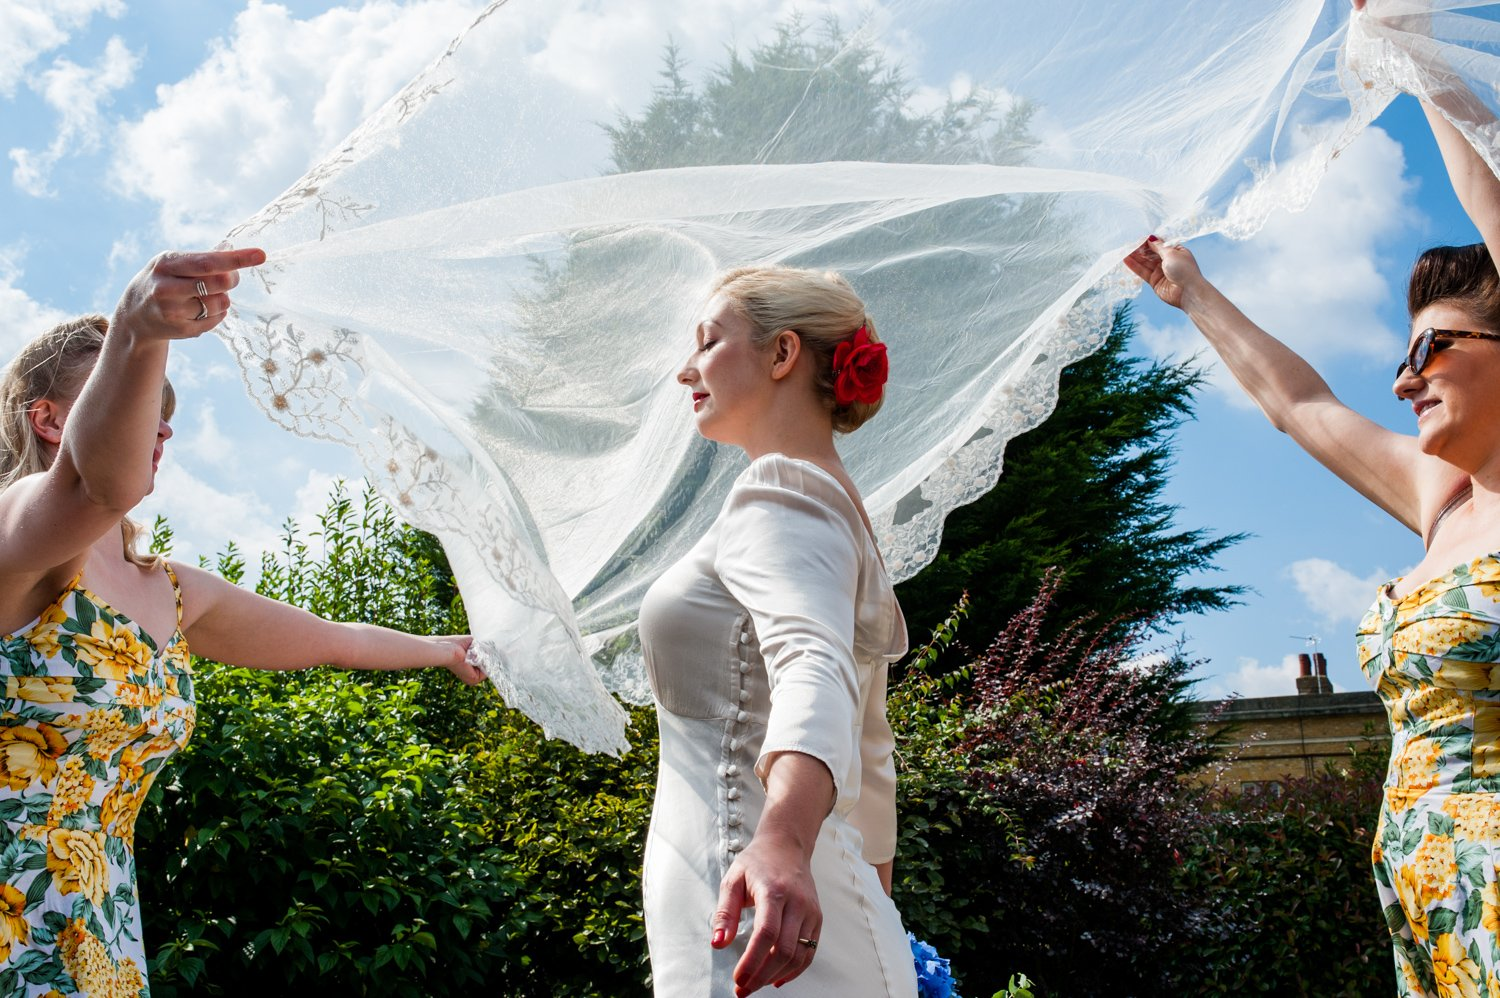 Creative award winning London wedding photography